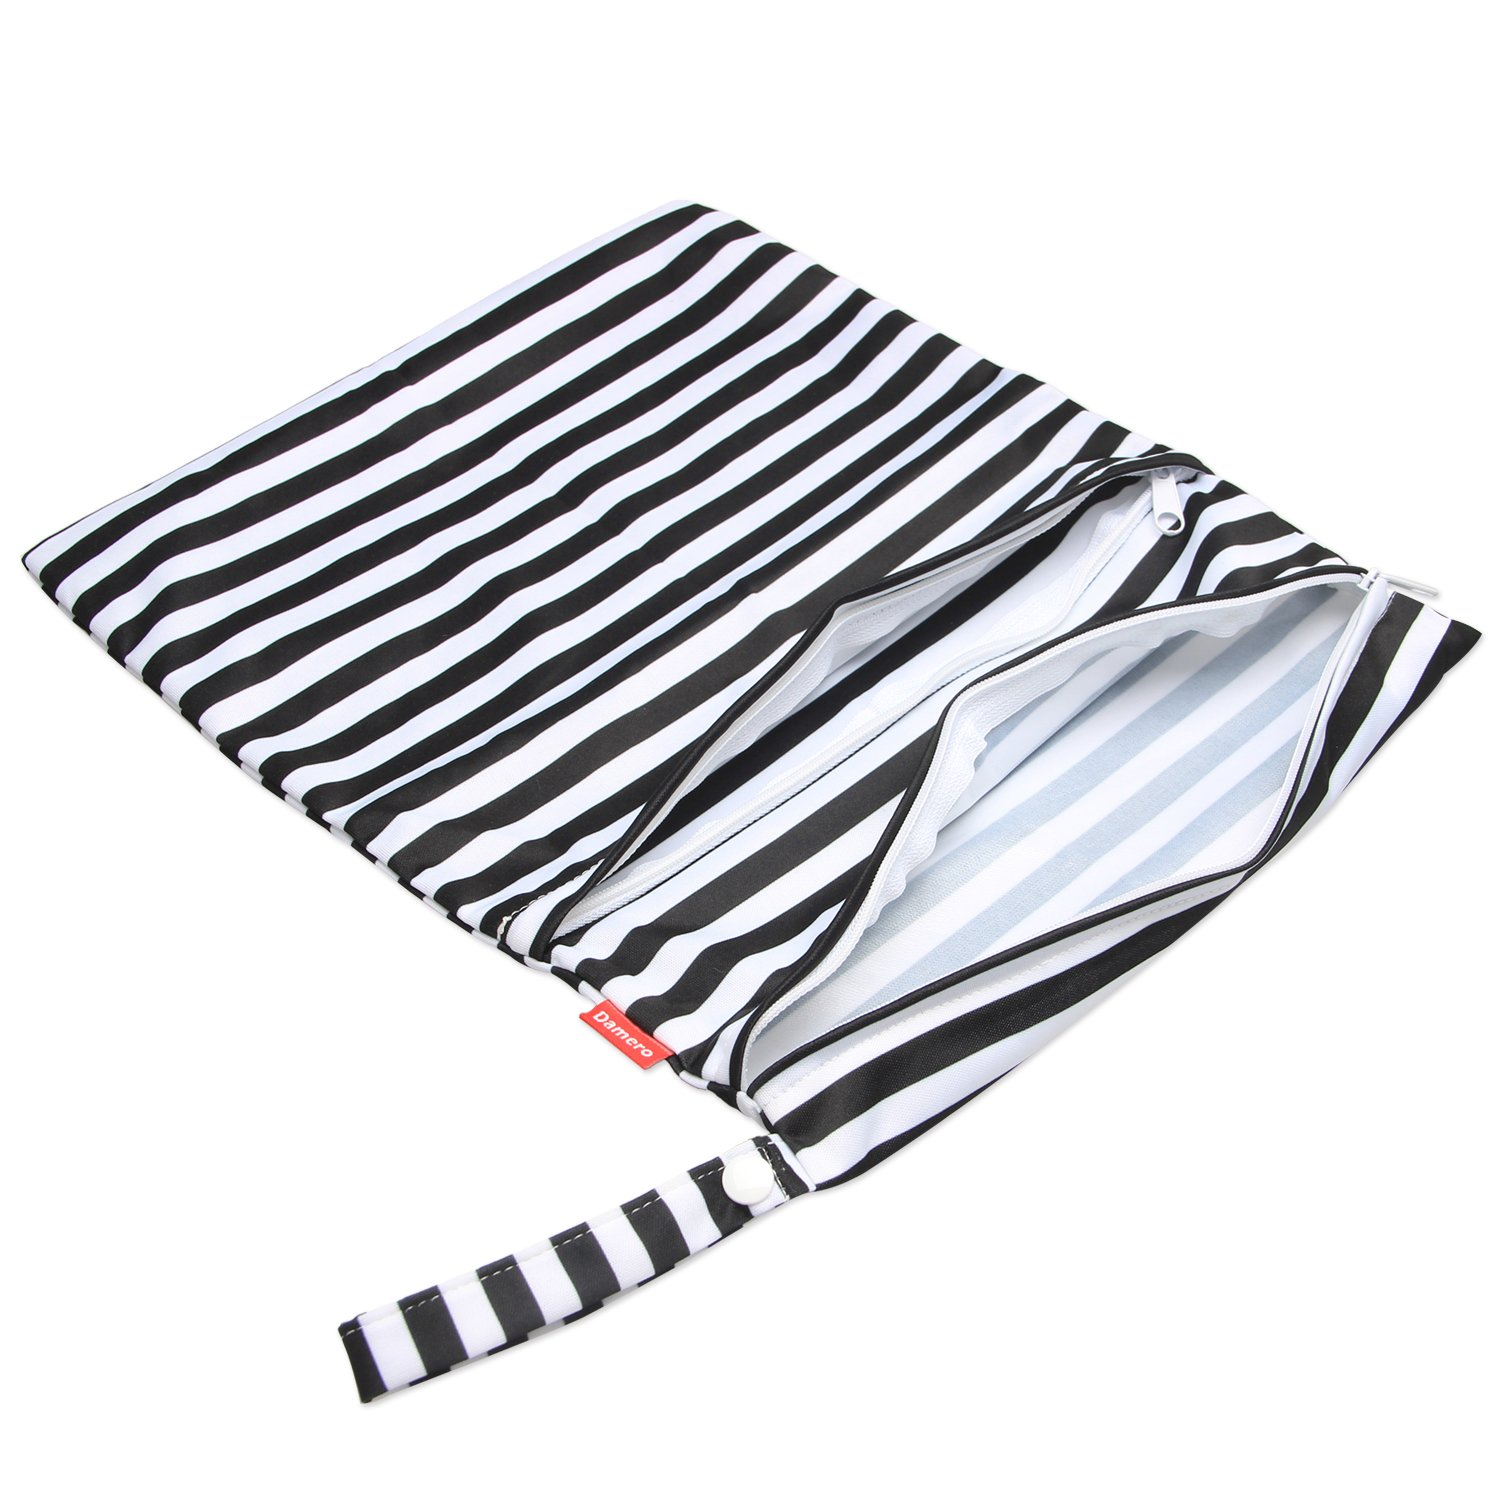 Damero 2pcs Travel Wet and Dry Bag with Handle for Cloth Diaper Black Strips Clothes Swimsuit and More Pumping Parts Easy to Grab and Go